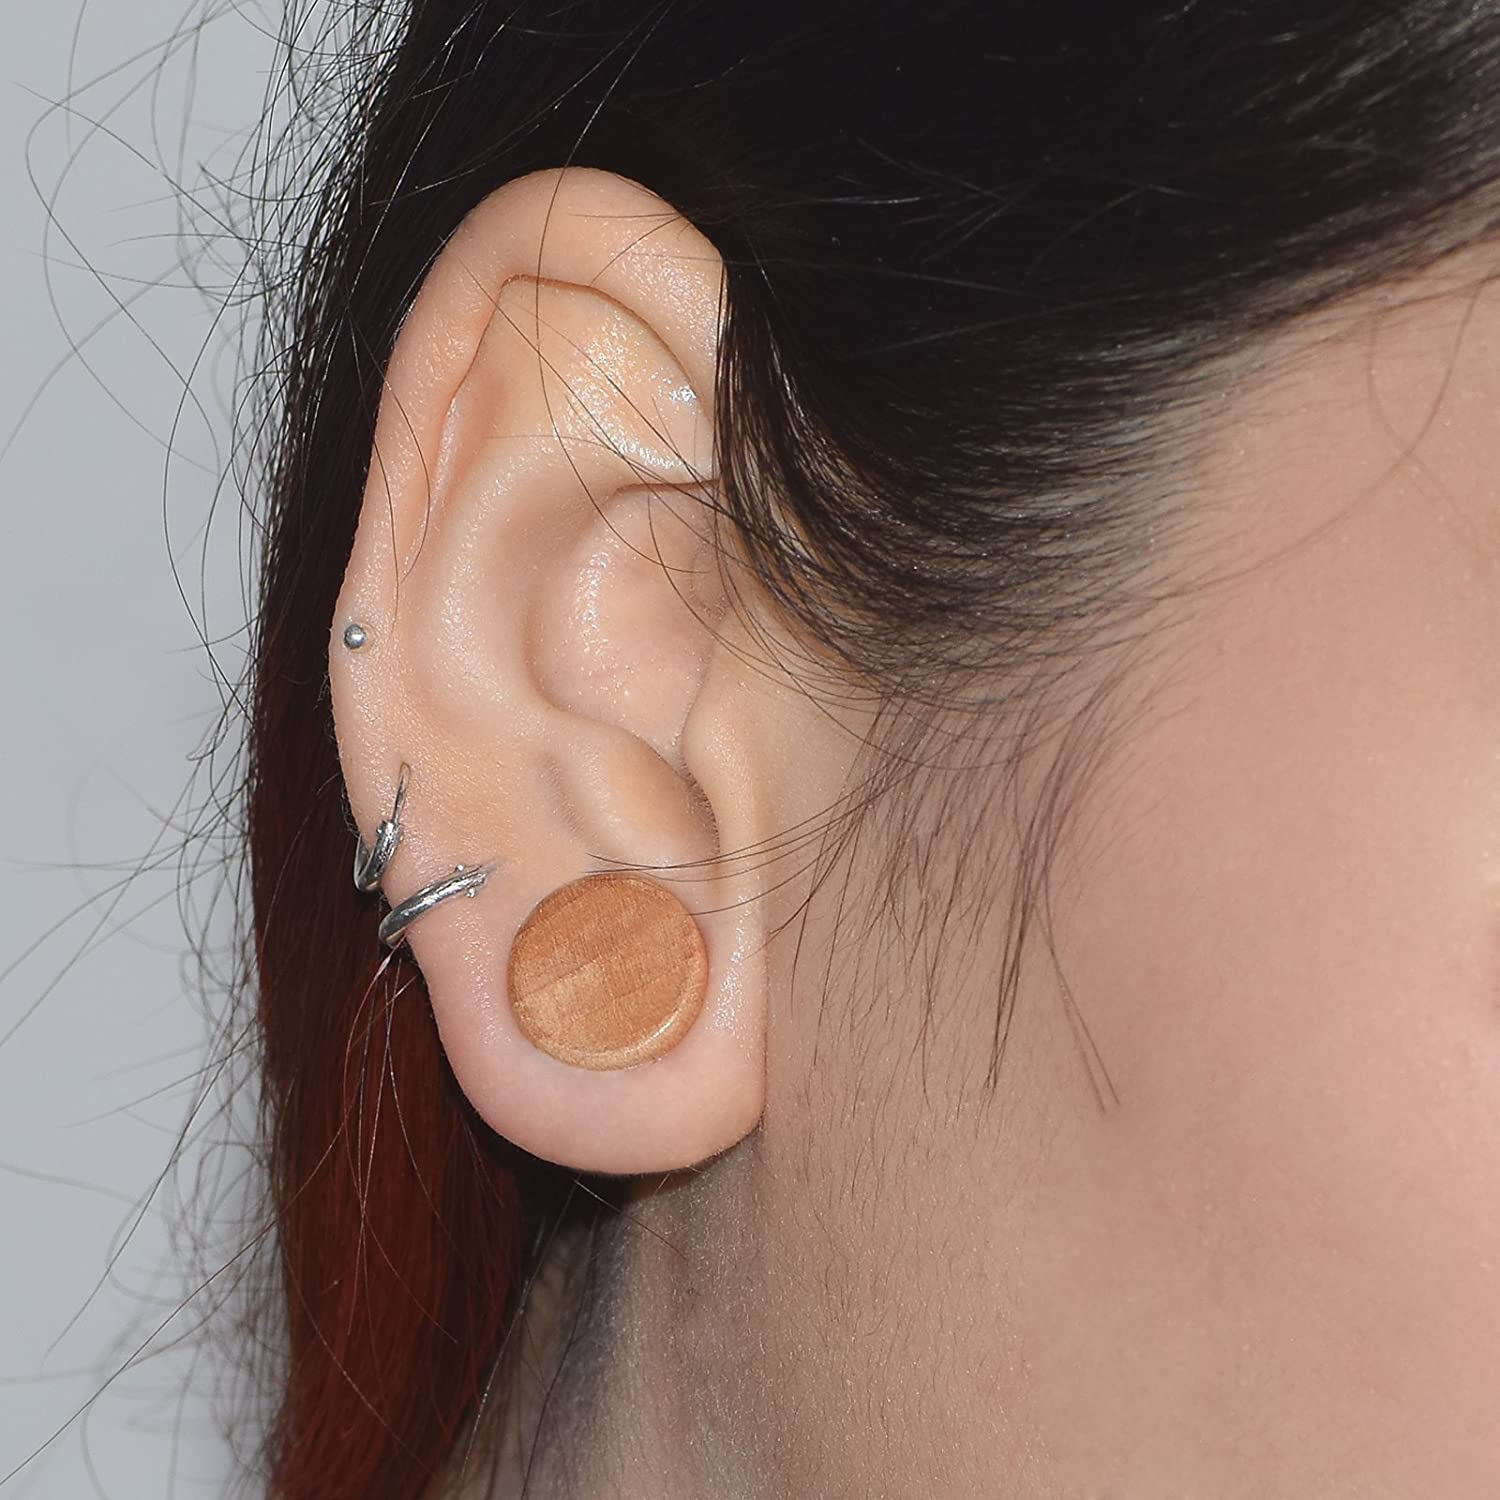 D&M Jewelry 2pcs Natural Organic Round Wooden Double Flared Ear Plug Stretcher Expander Ear Piercing Jewelry 0g-3/4 Qianmin Co.Ltd CW062-12MM